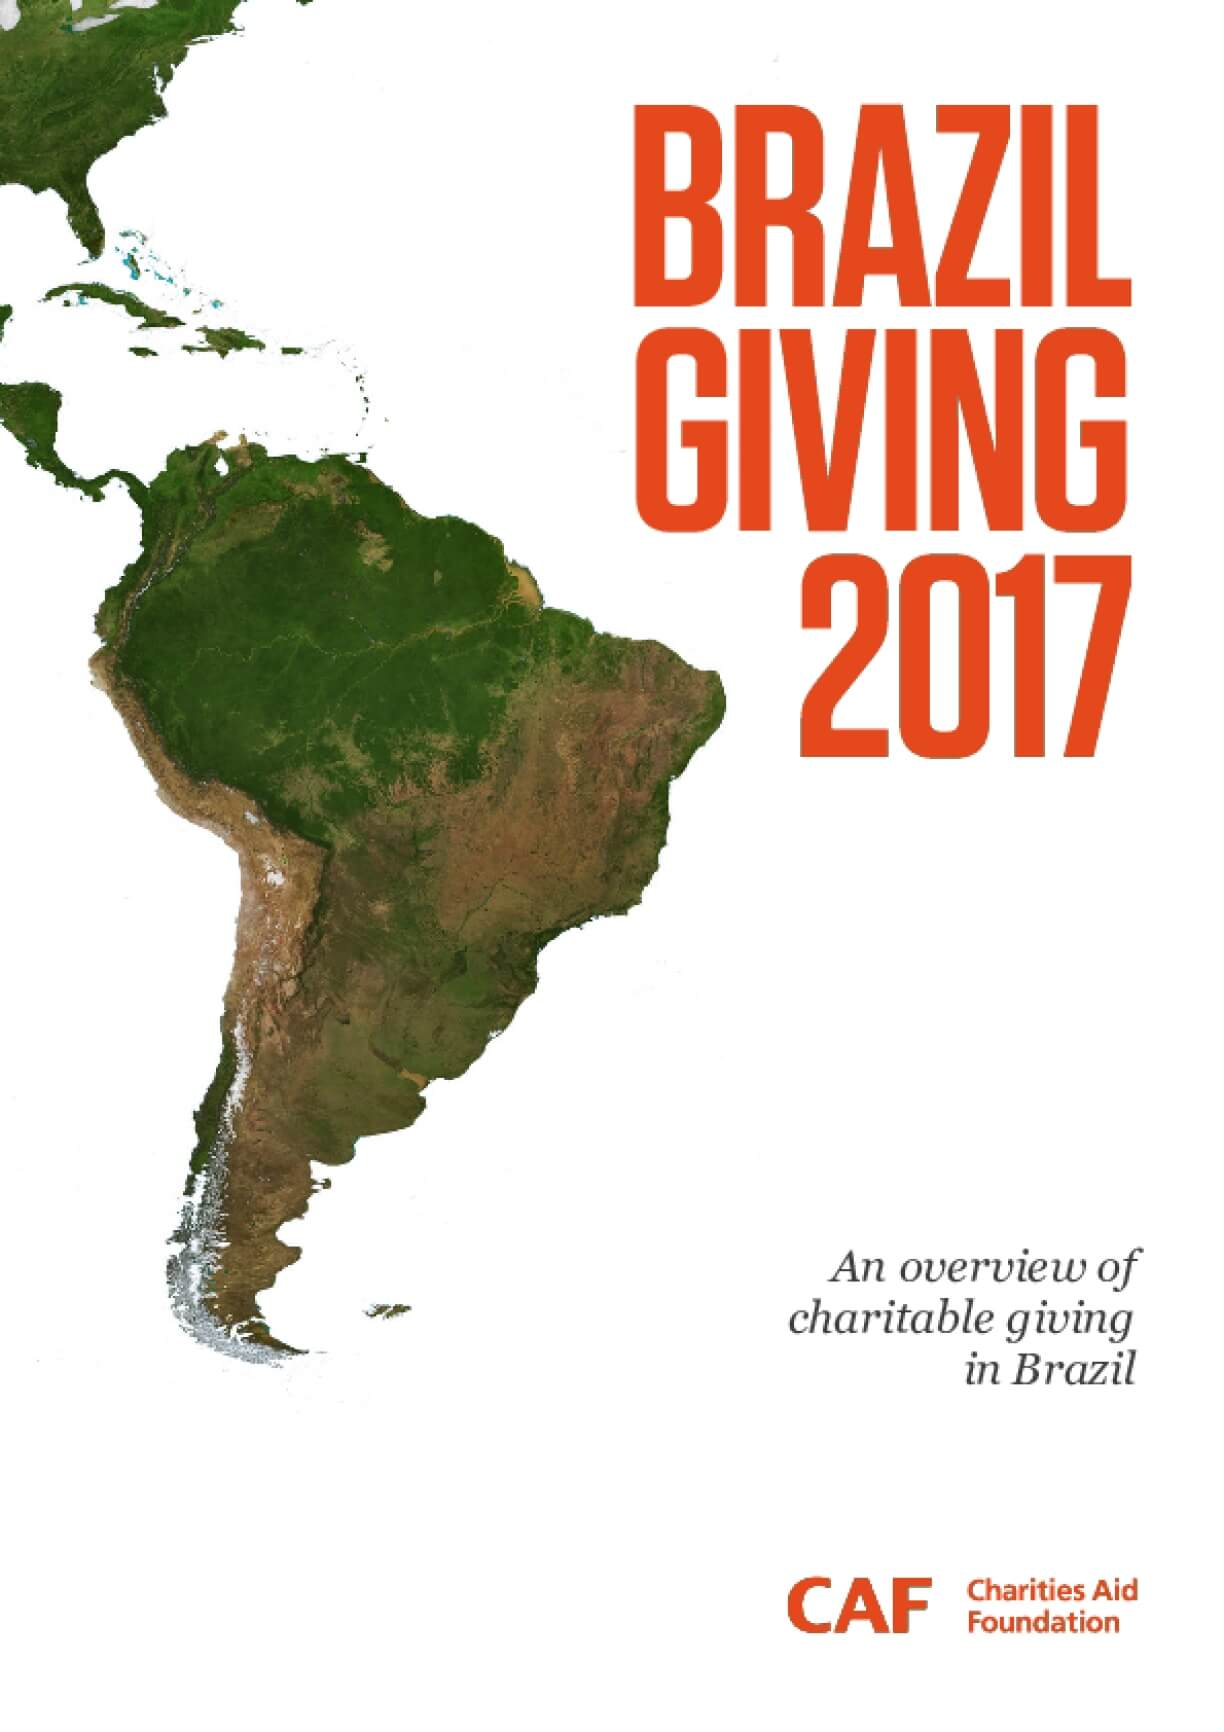 Brazil Giving 2017: An Overview of Charitable Giving in Brazil